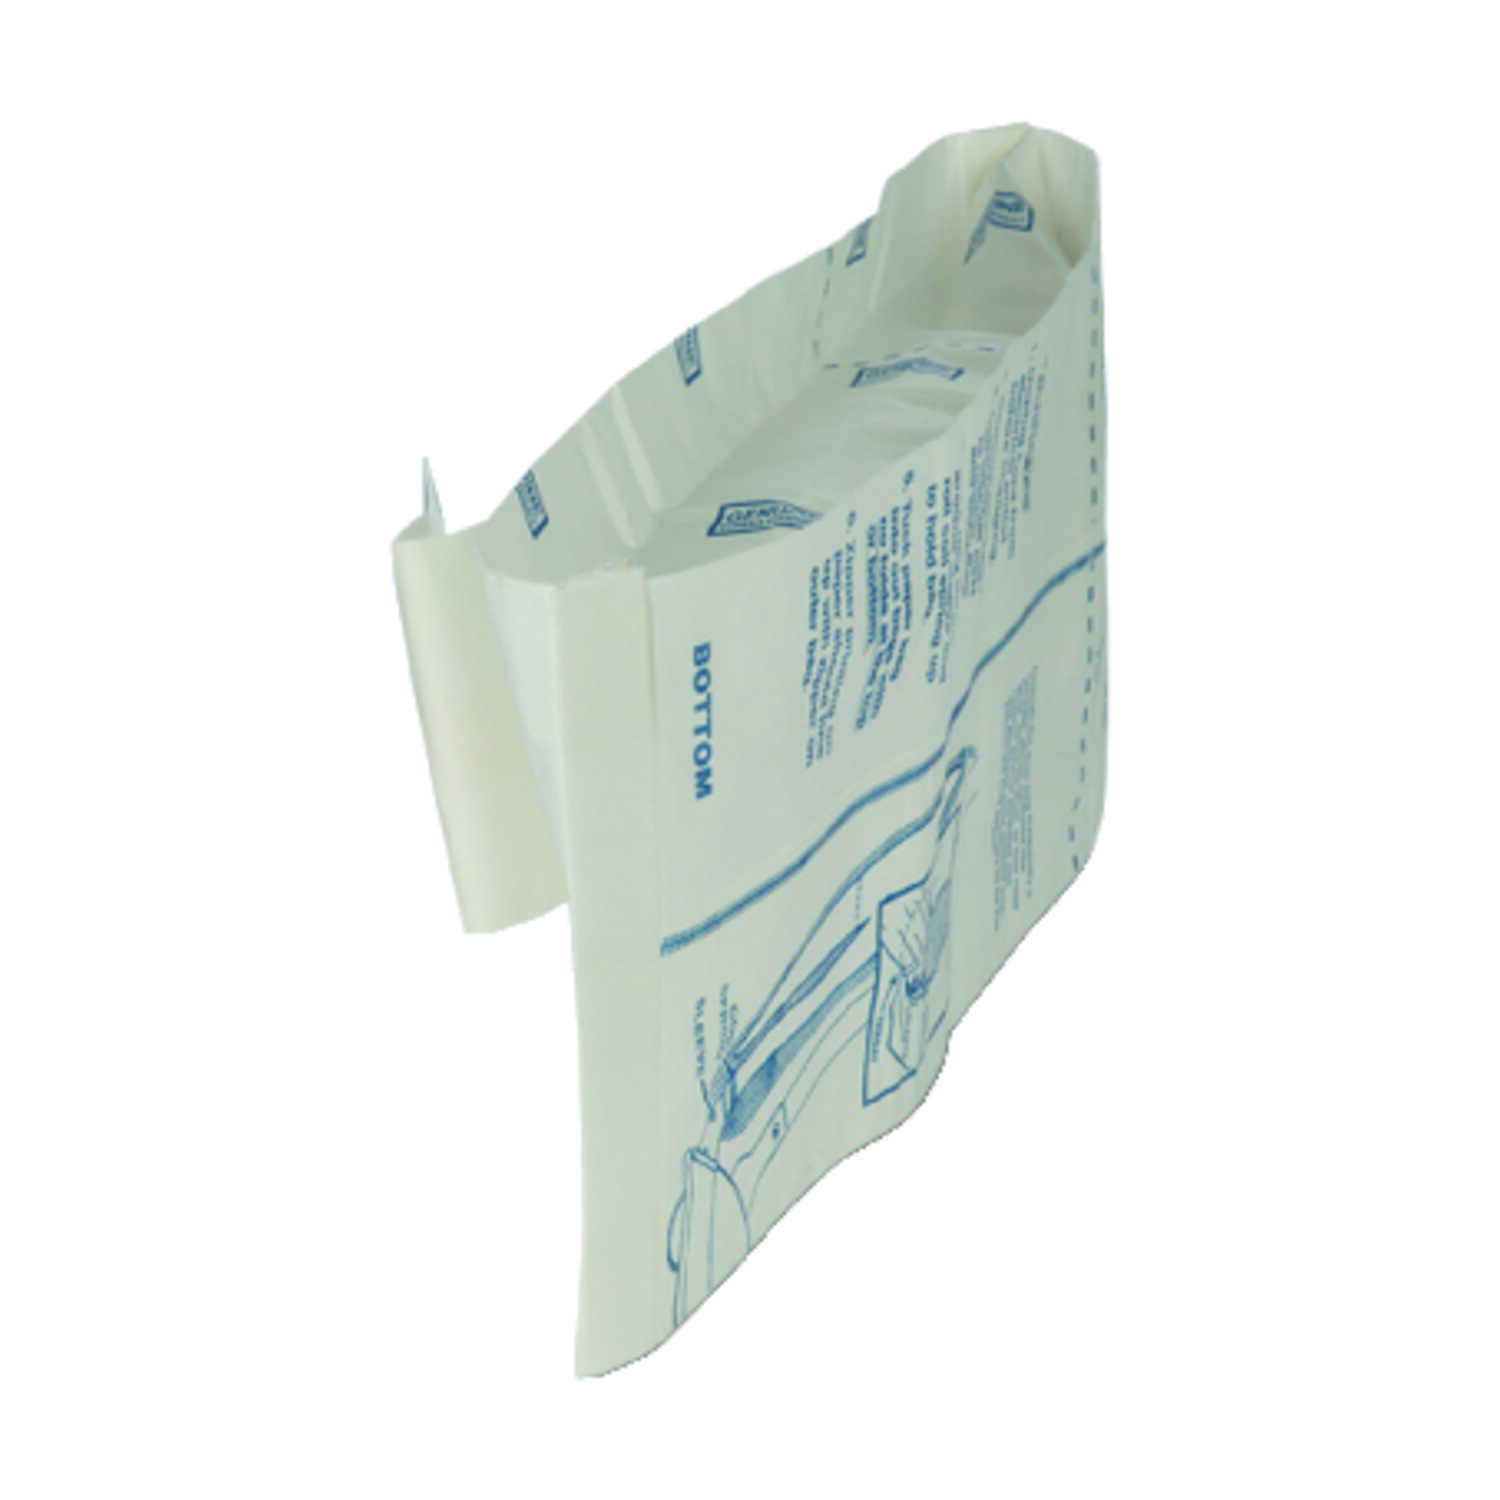 Eureka  Vacuum Bag  For Fits all standard Eureka uprights Series 1400, 1900, 2000, 2100, AND 5000 3